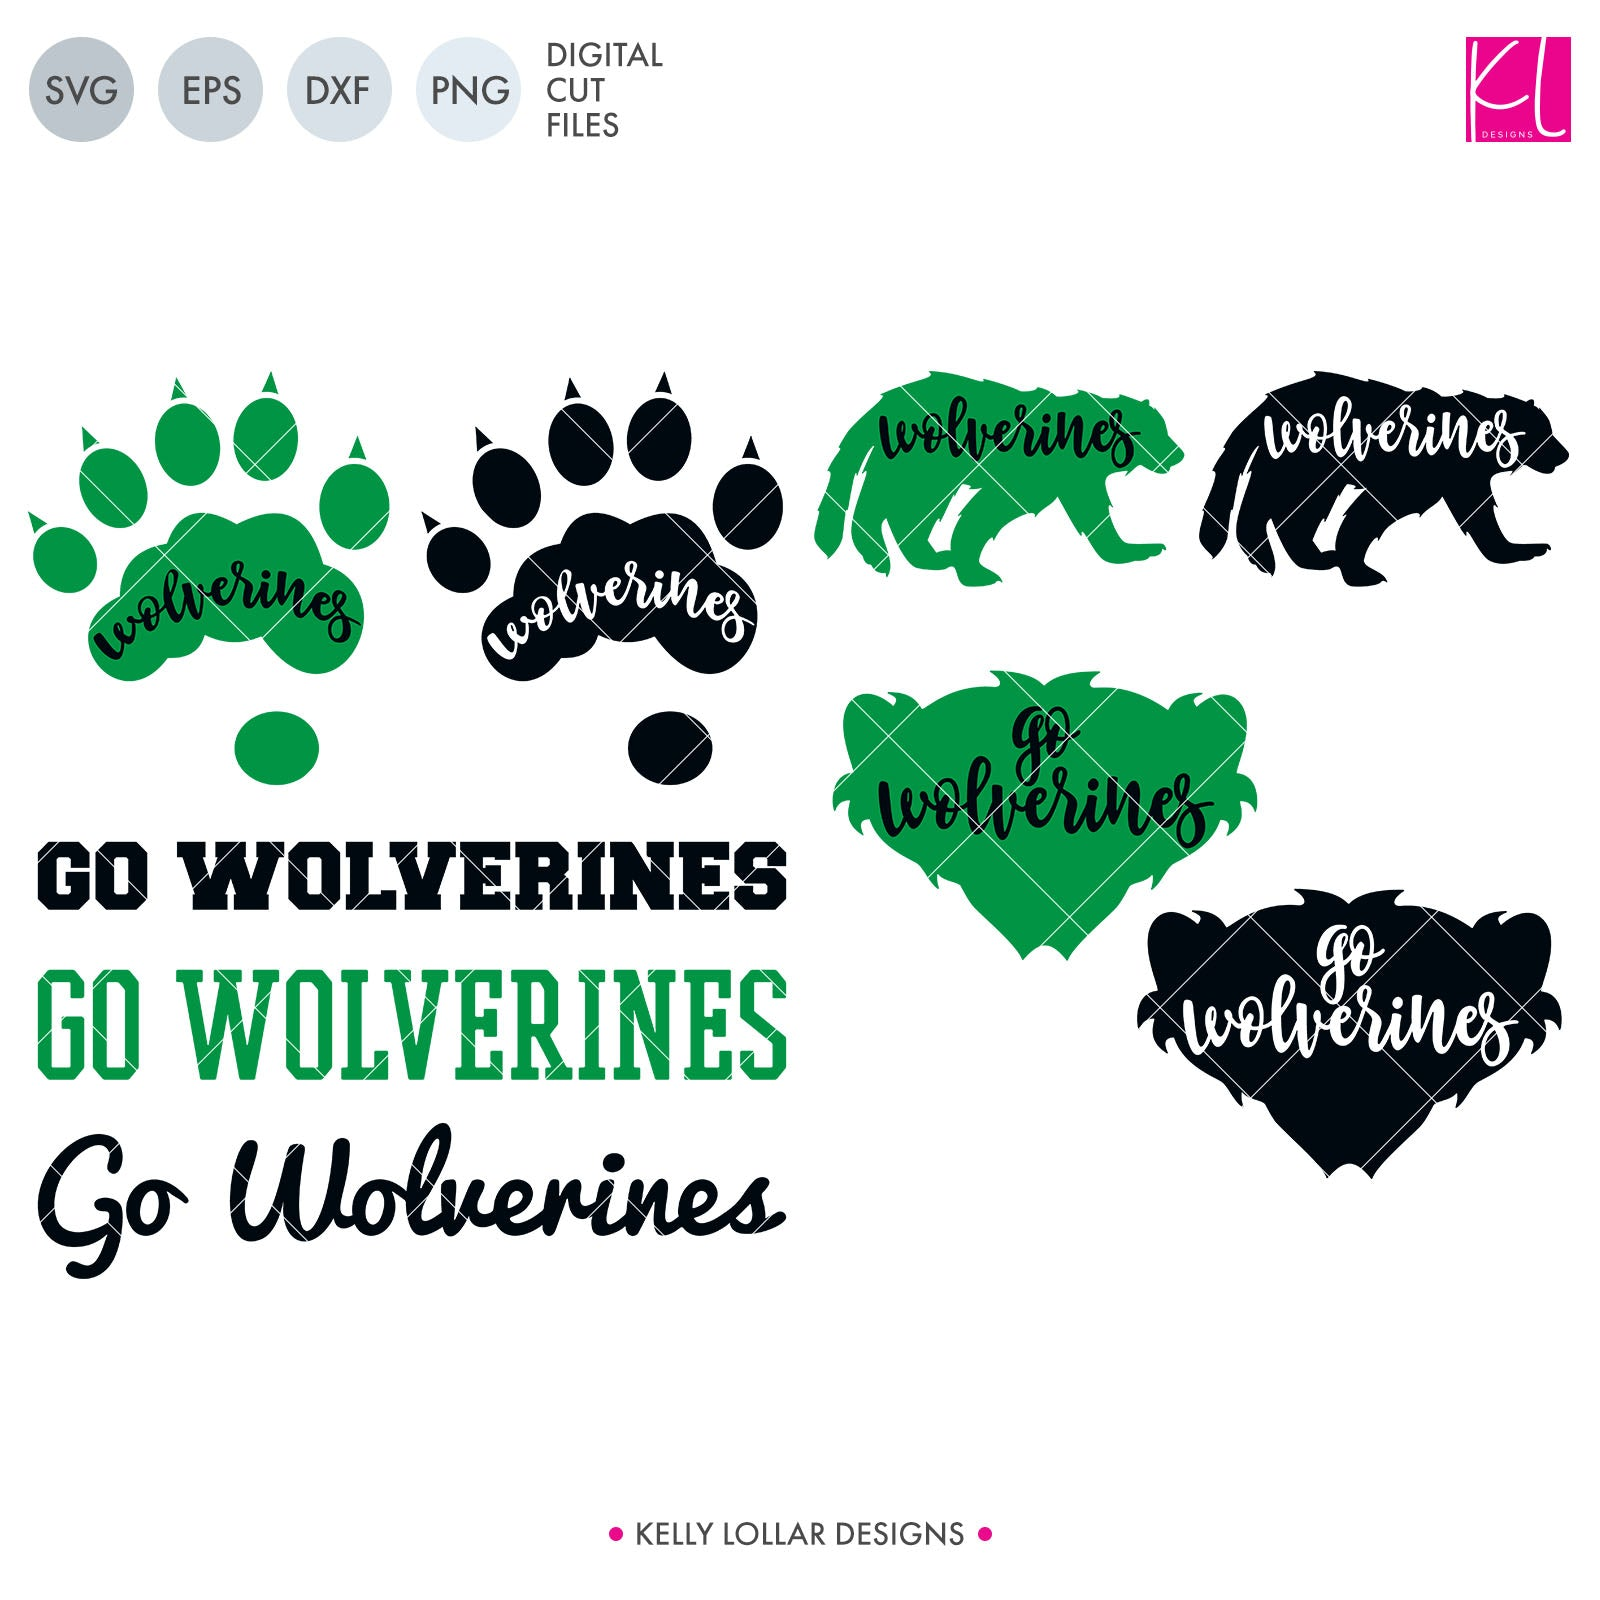 Wolverines Mascot Bundle | SVG DXF EPS PNG Cut Files A perfect bundle for Wolverines school spirit crafters! This set of 28 designs includes everything from cute and girly to unisex so you'll have a little something for everyone. Includes